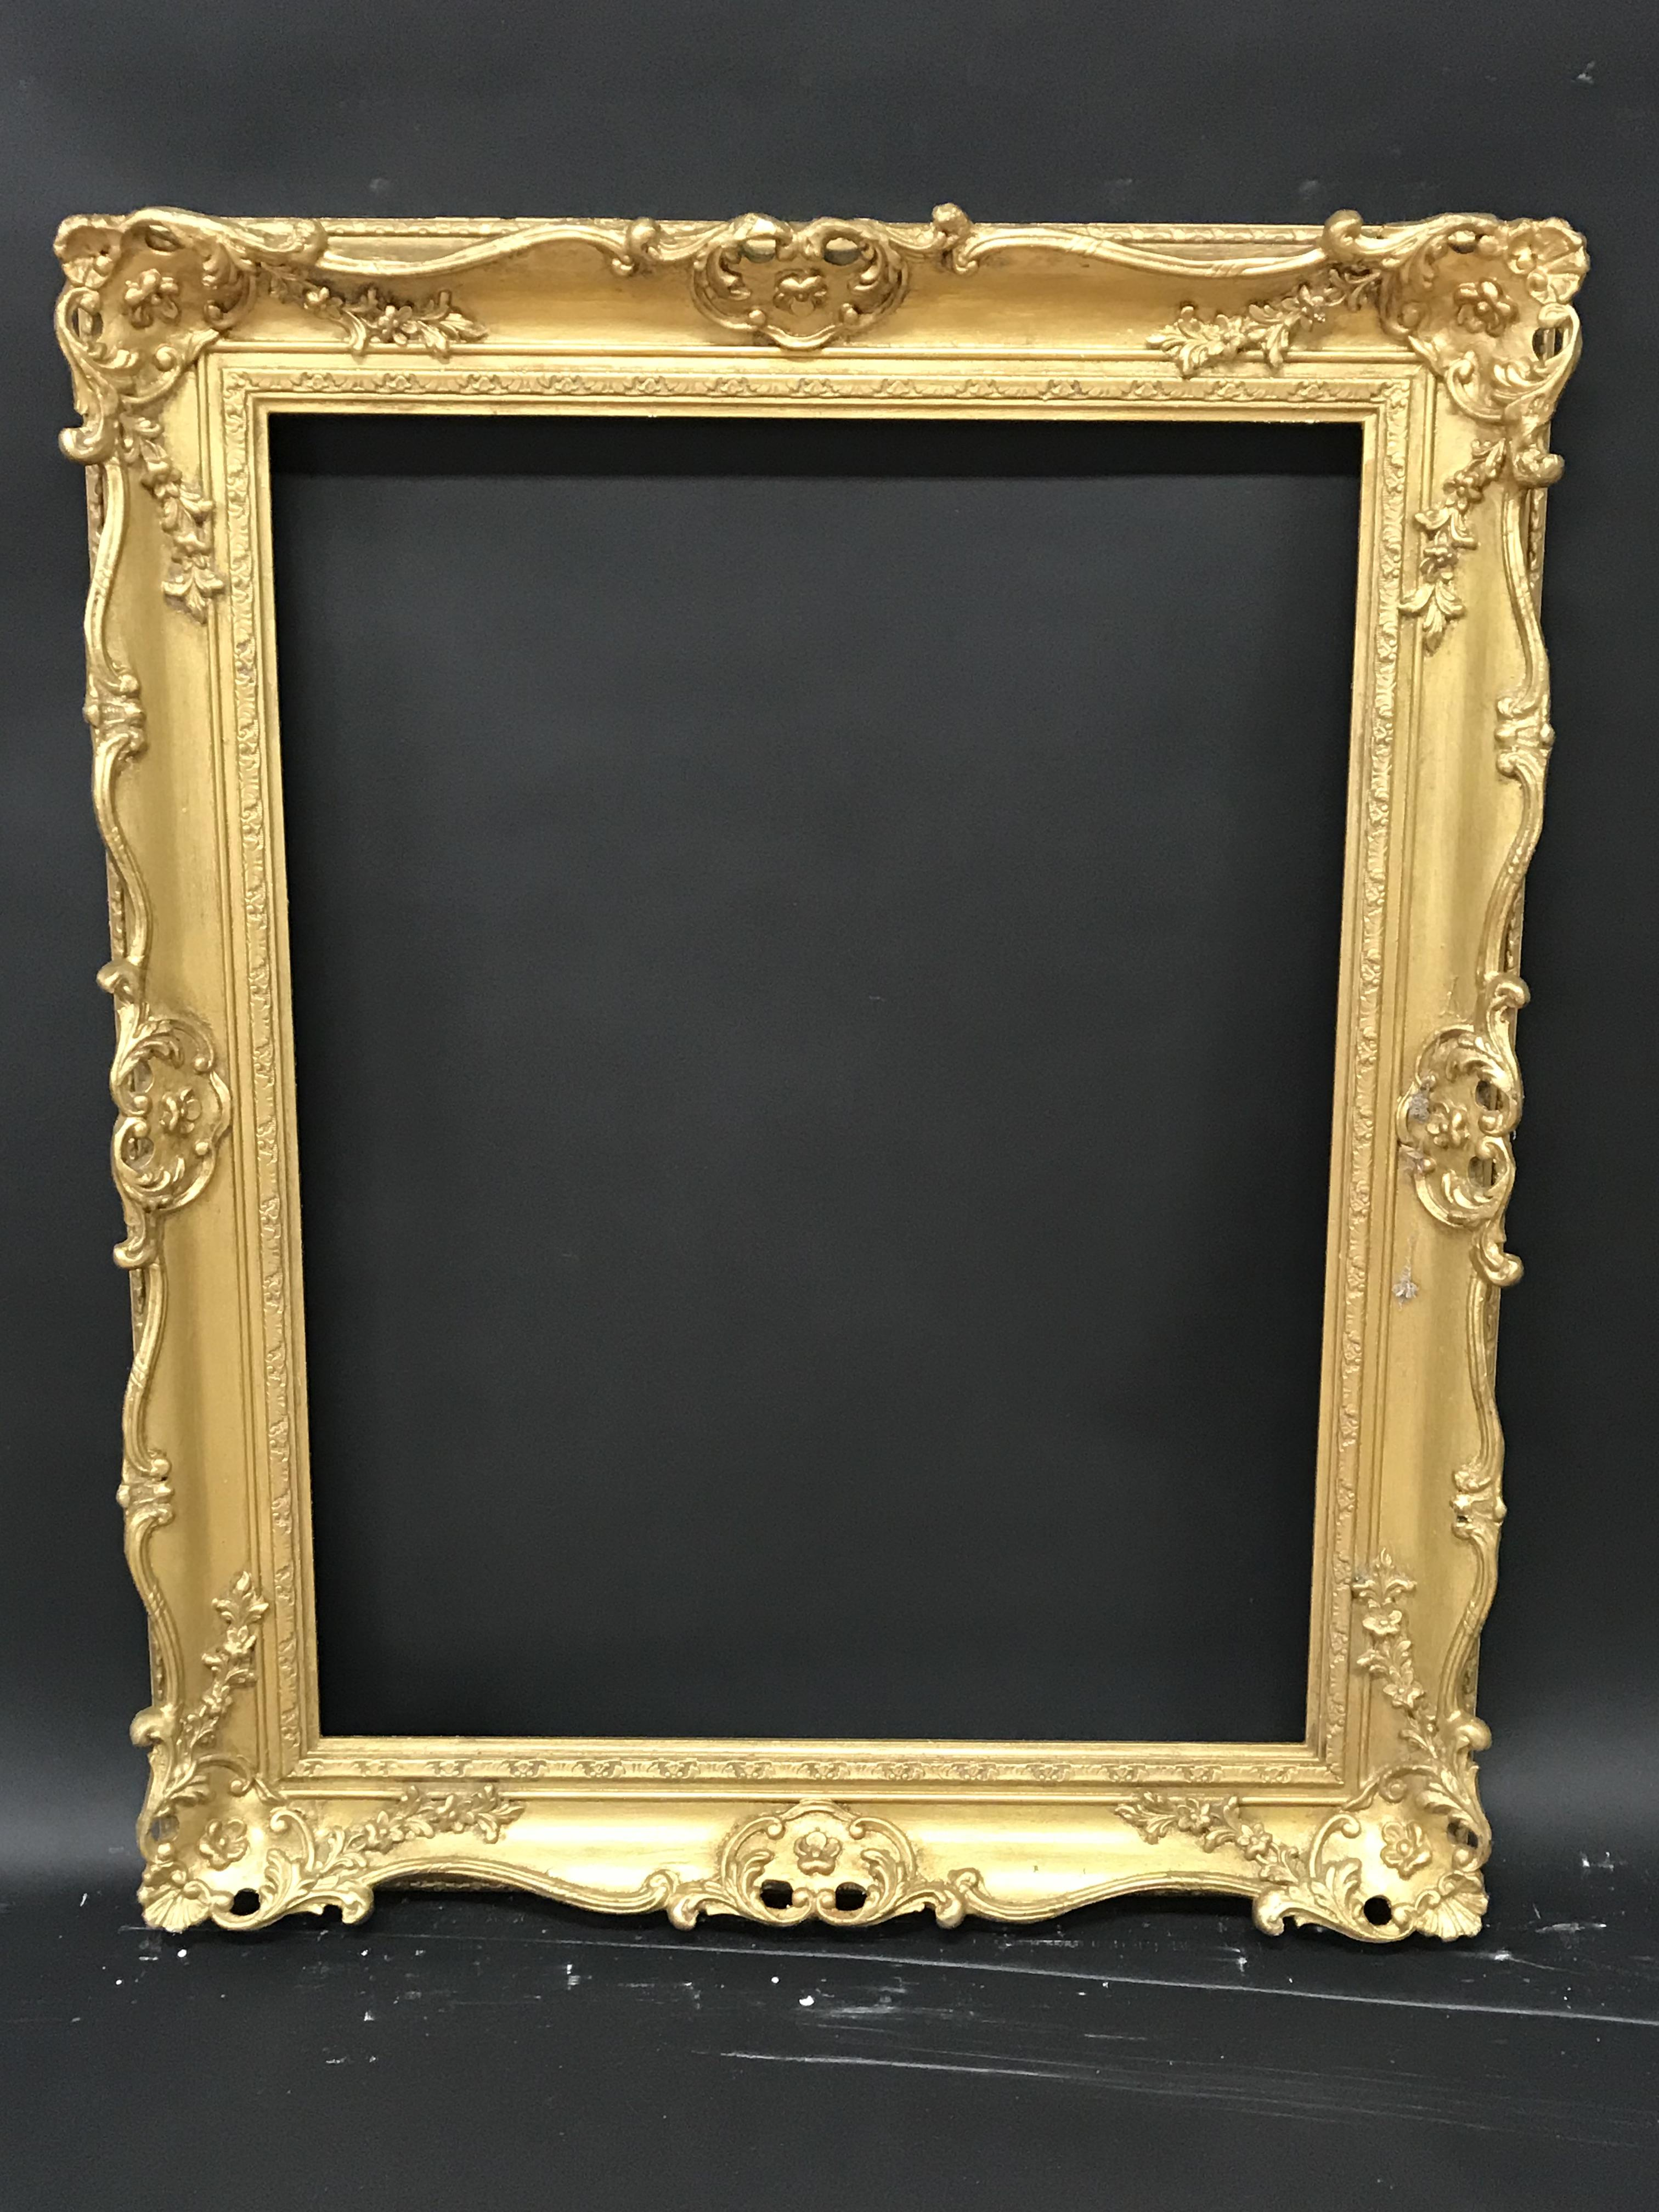 Lot 18 - 20th Century English School. A Gilt Composition Frame, with Swept and Pierced Centres and Corners,